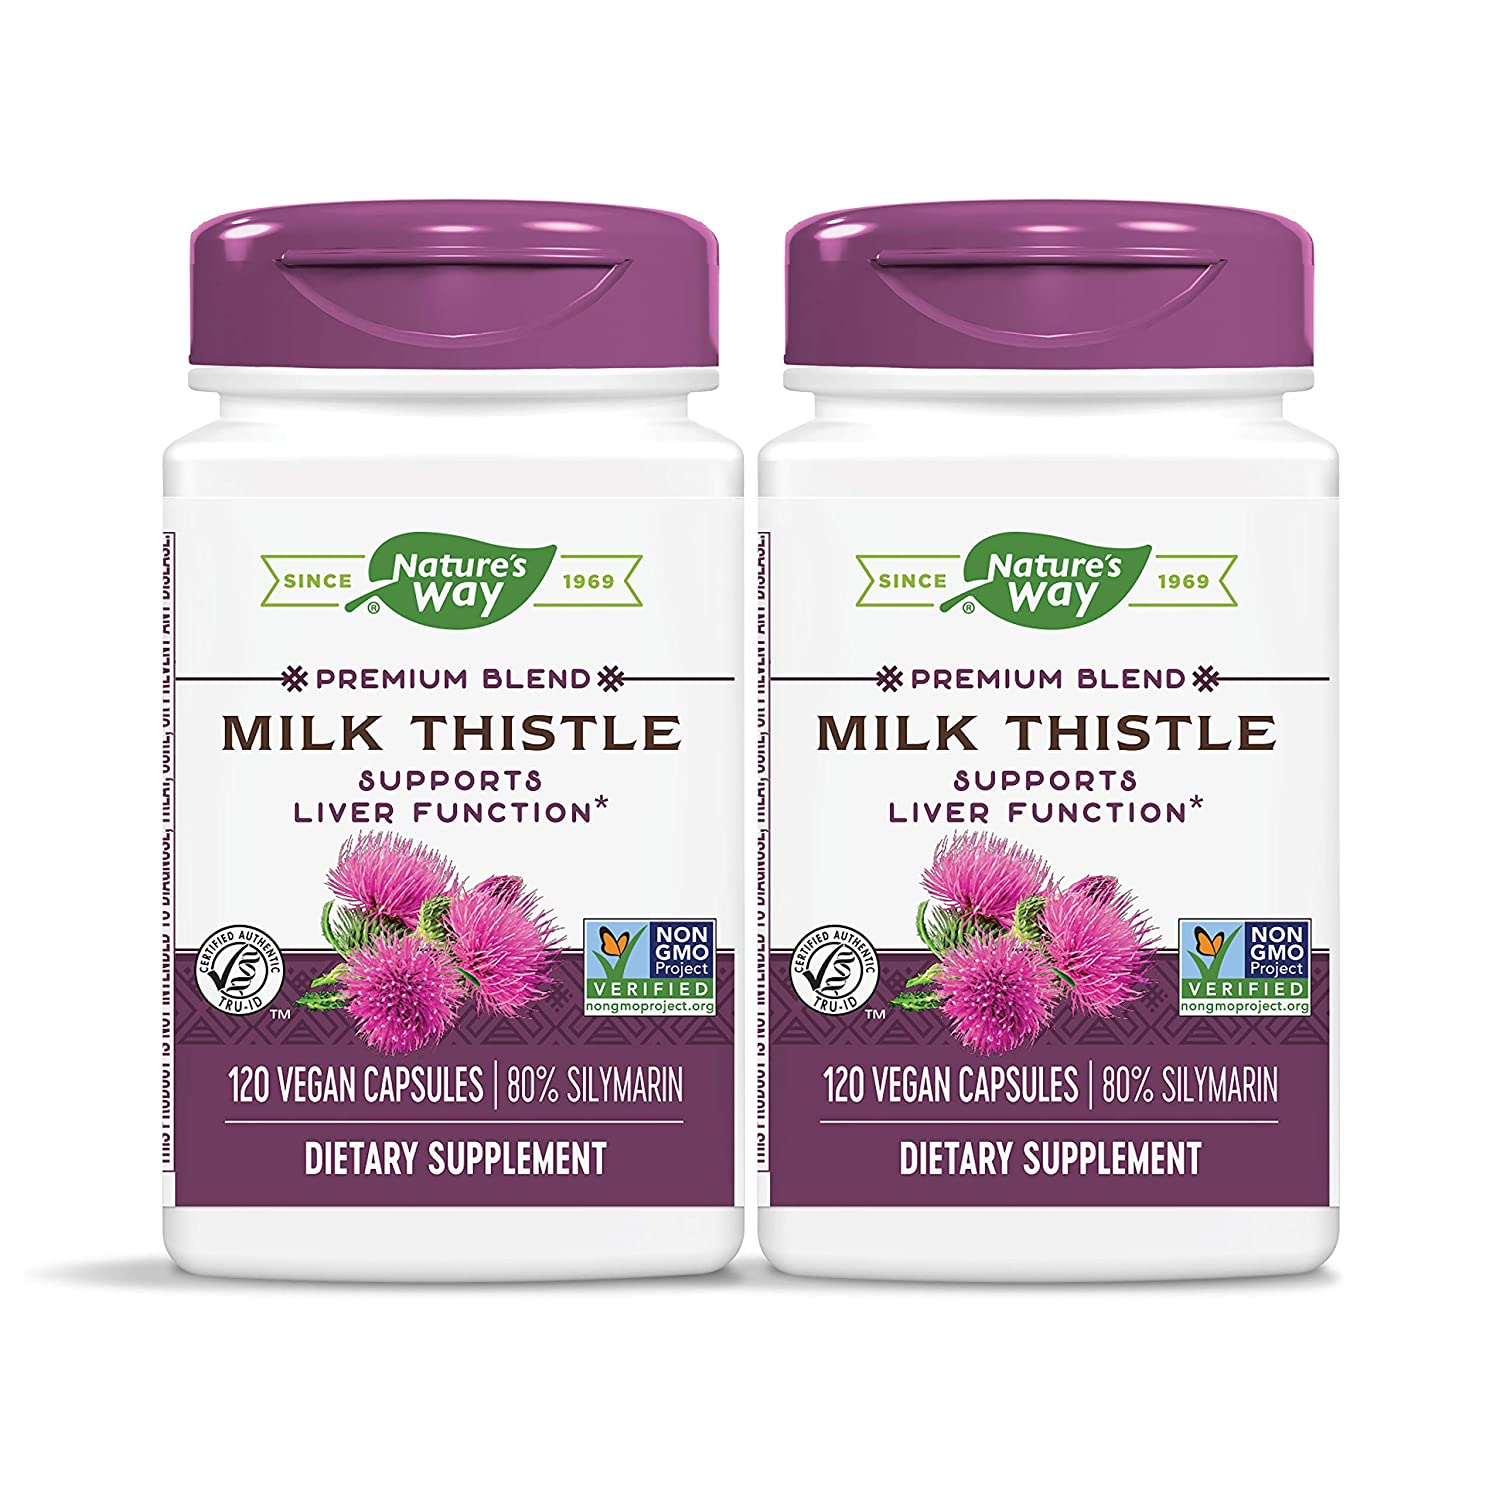 Nature s Way Standardized Milk Thistle 80 Silymarin per serving, TRU-ID Certified, Non-GMO Project Verified, Vegetarian, 120 Vegetarian Capsules, Pack of 2